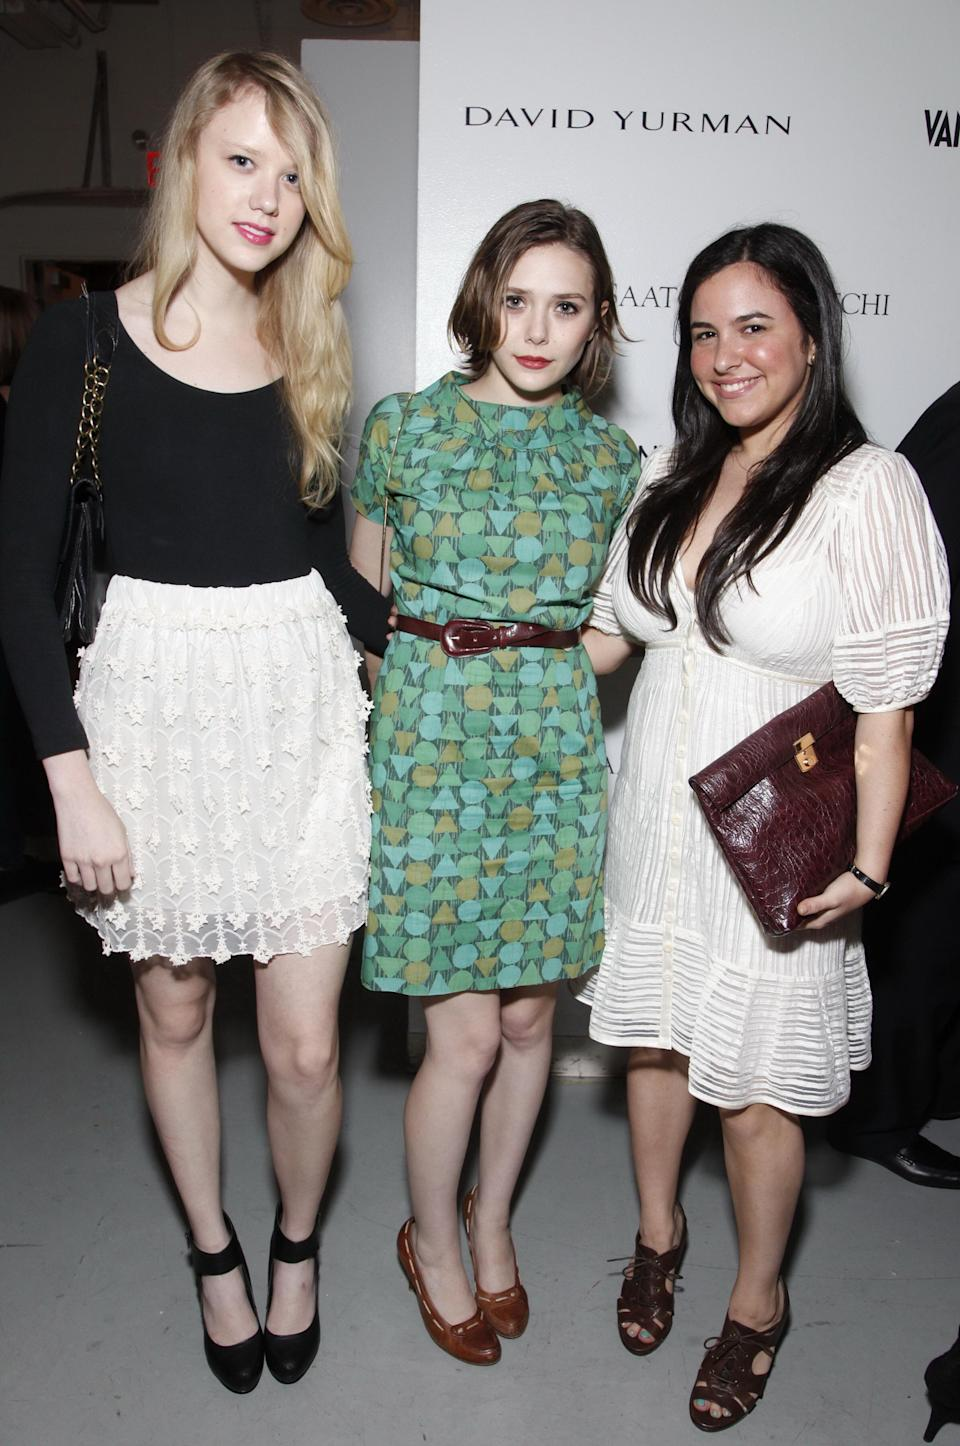 Lauren Lucas, Olsen (center) and Rebecca Dorfman at the Free Arts NYC art auction benefit in New York City on May 14, 2010.